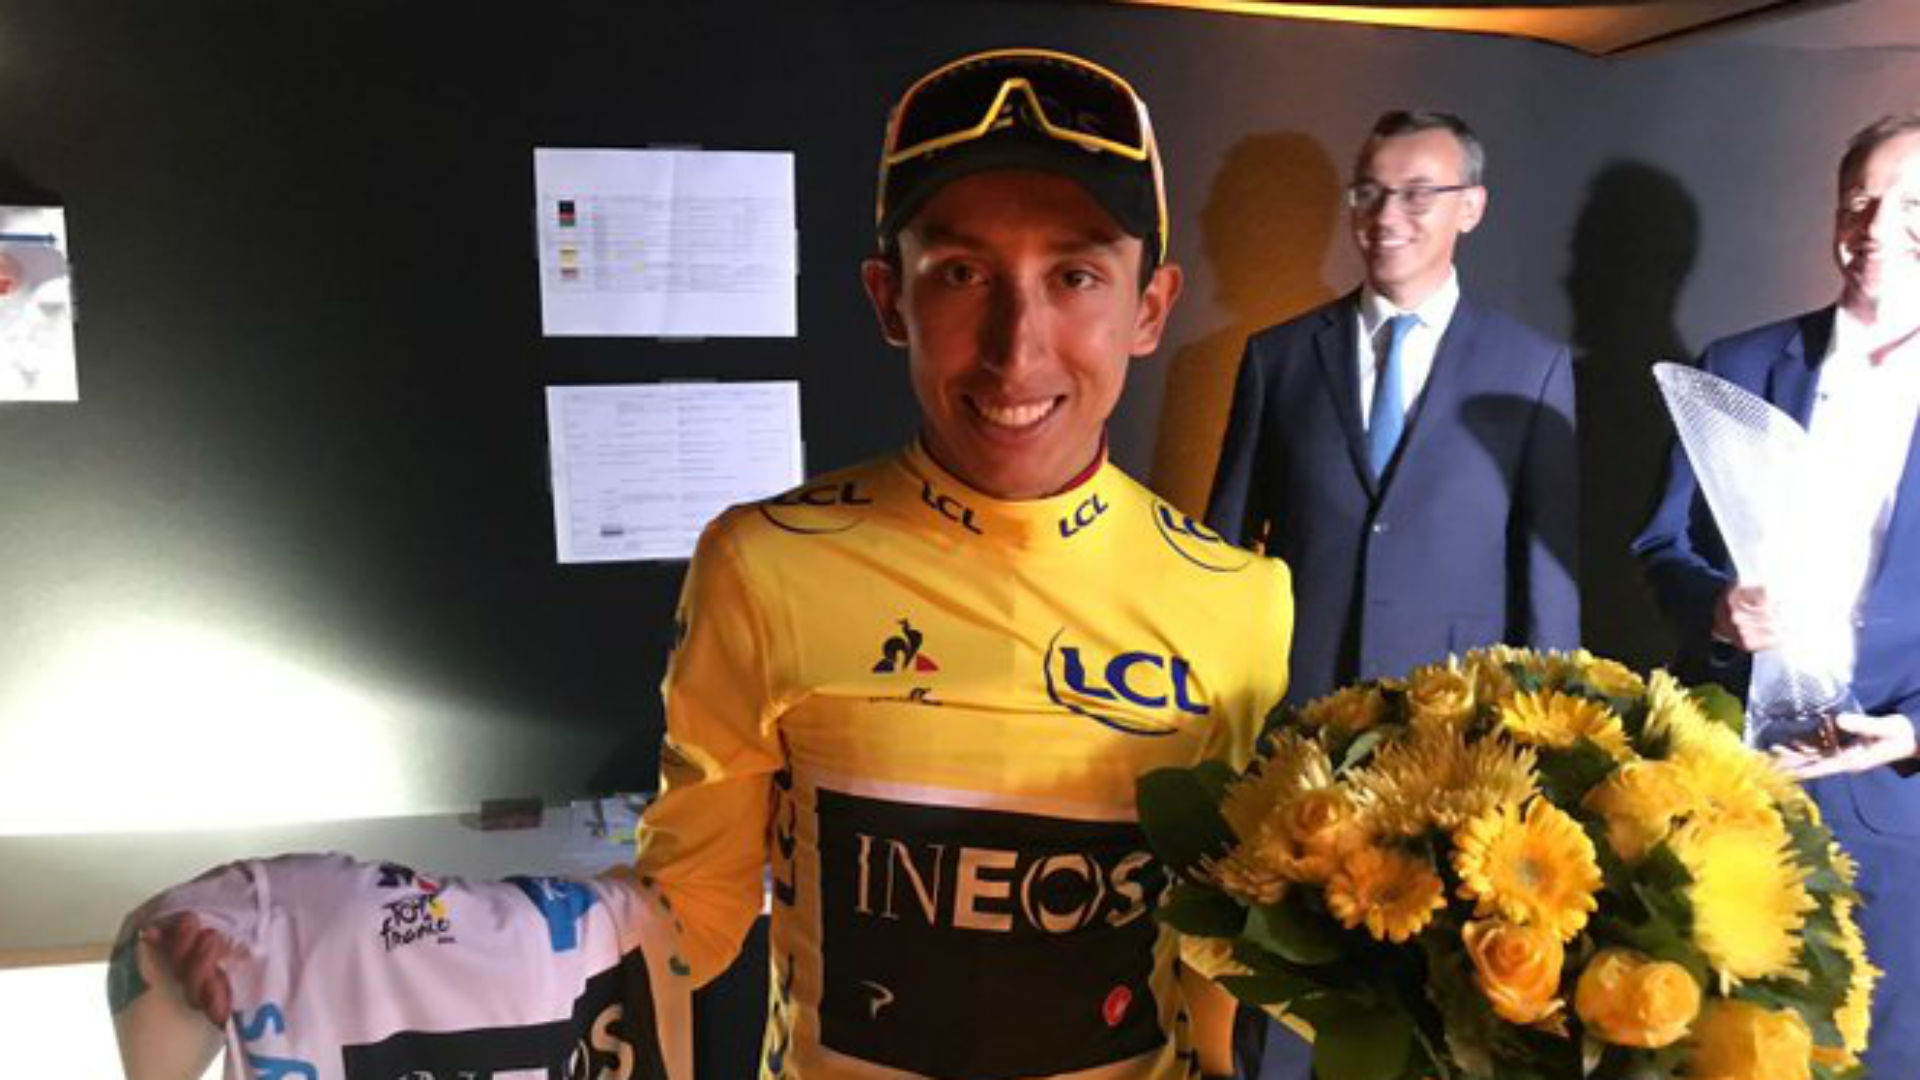 A big crowd came out to celebrate Egan Bernal's homecoming following his historic Tour de France triumph.